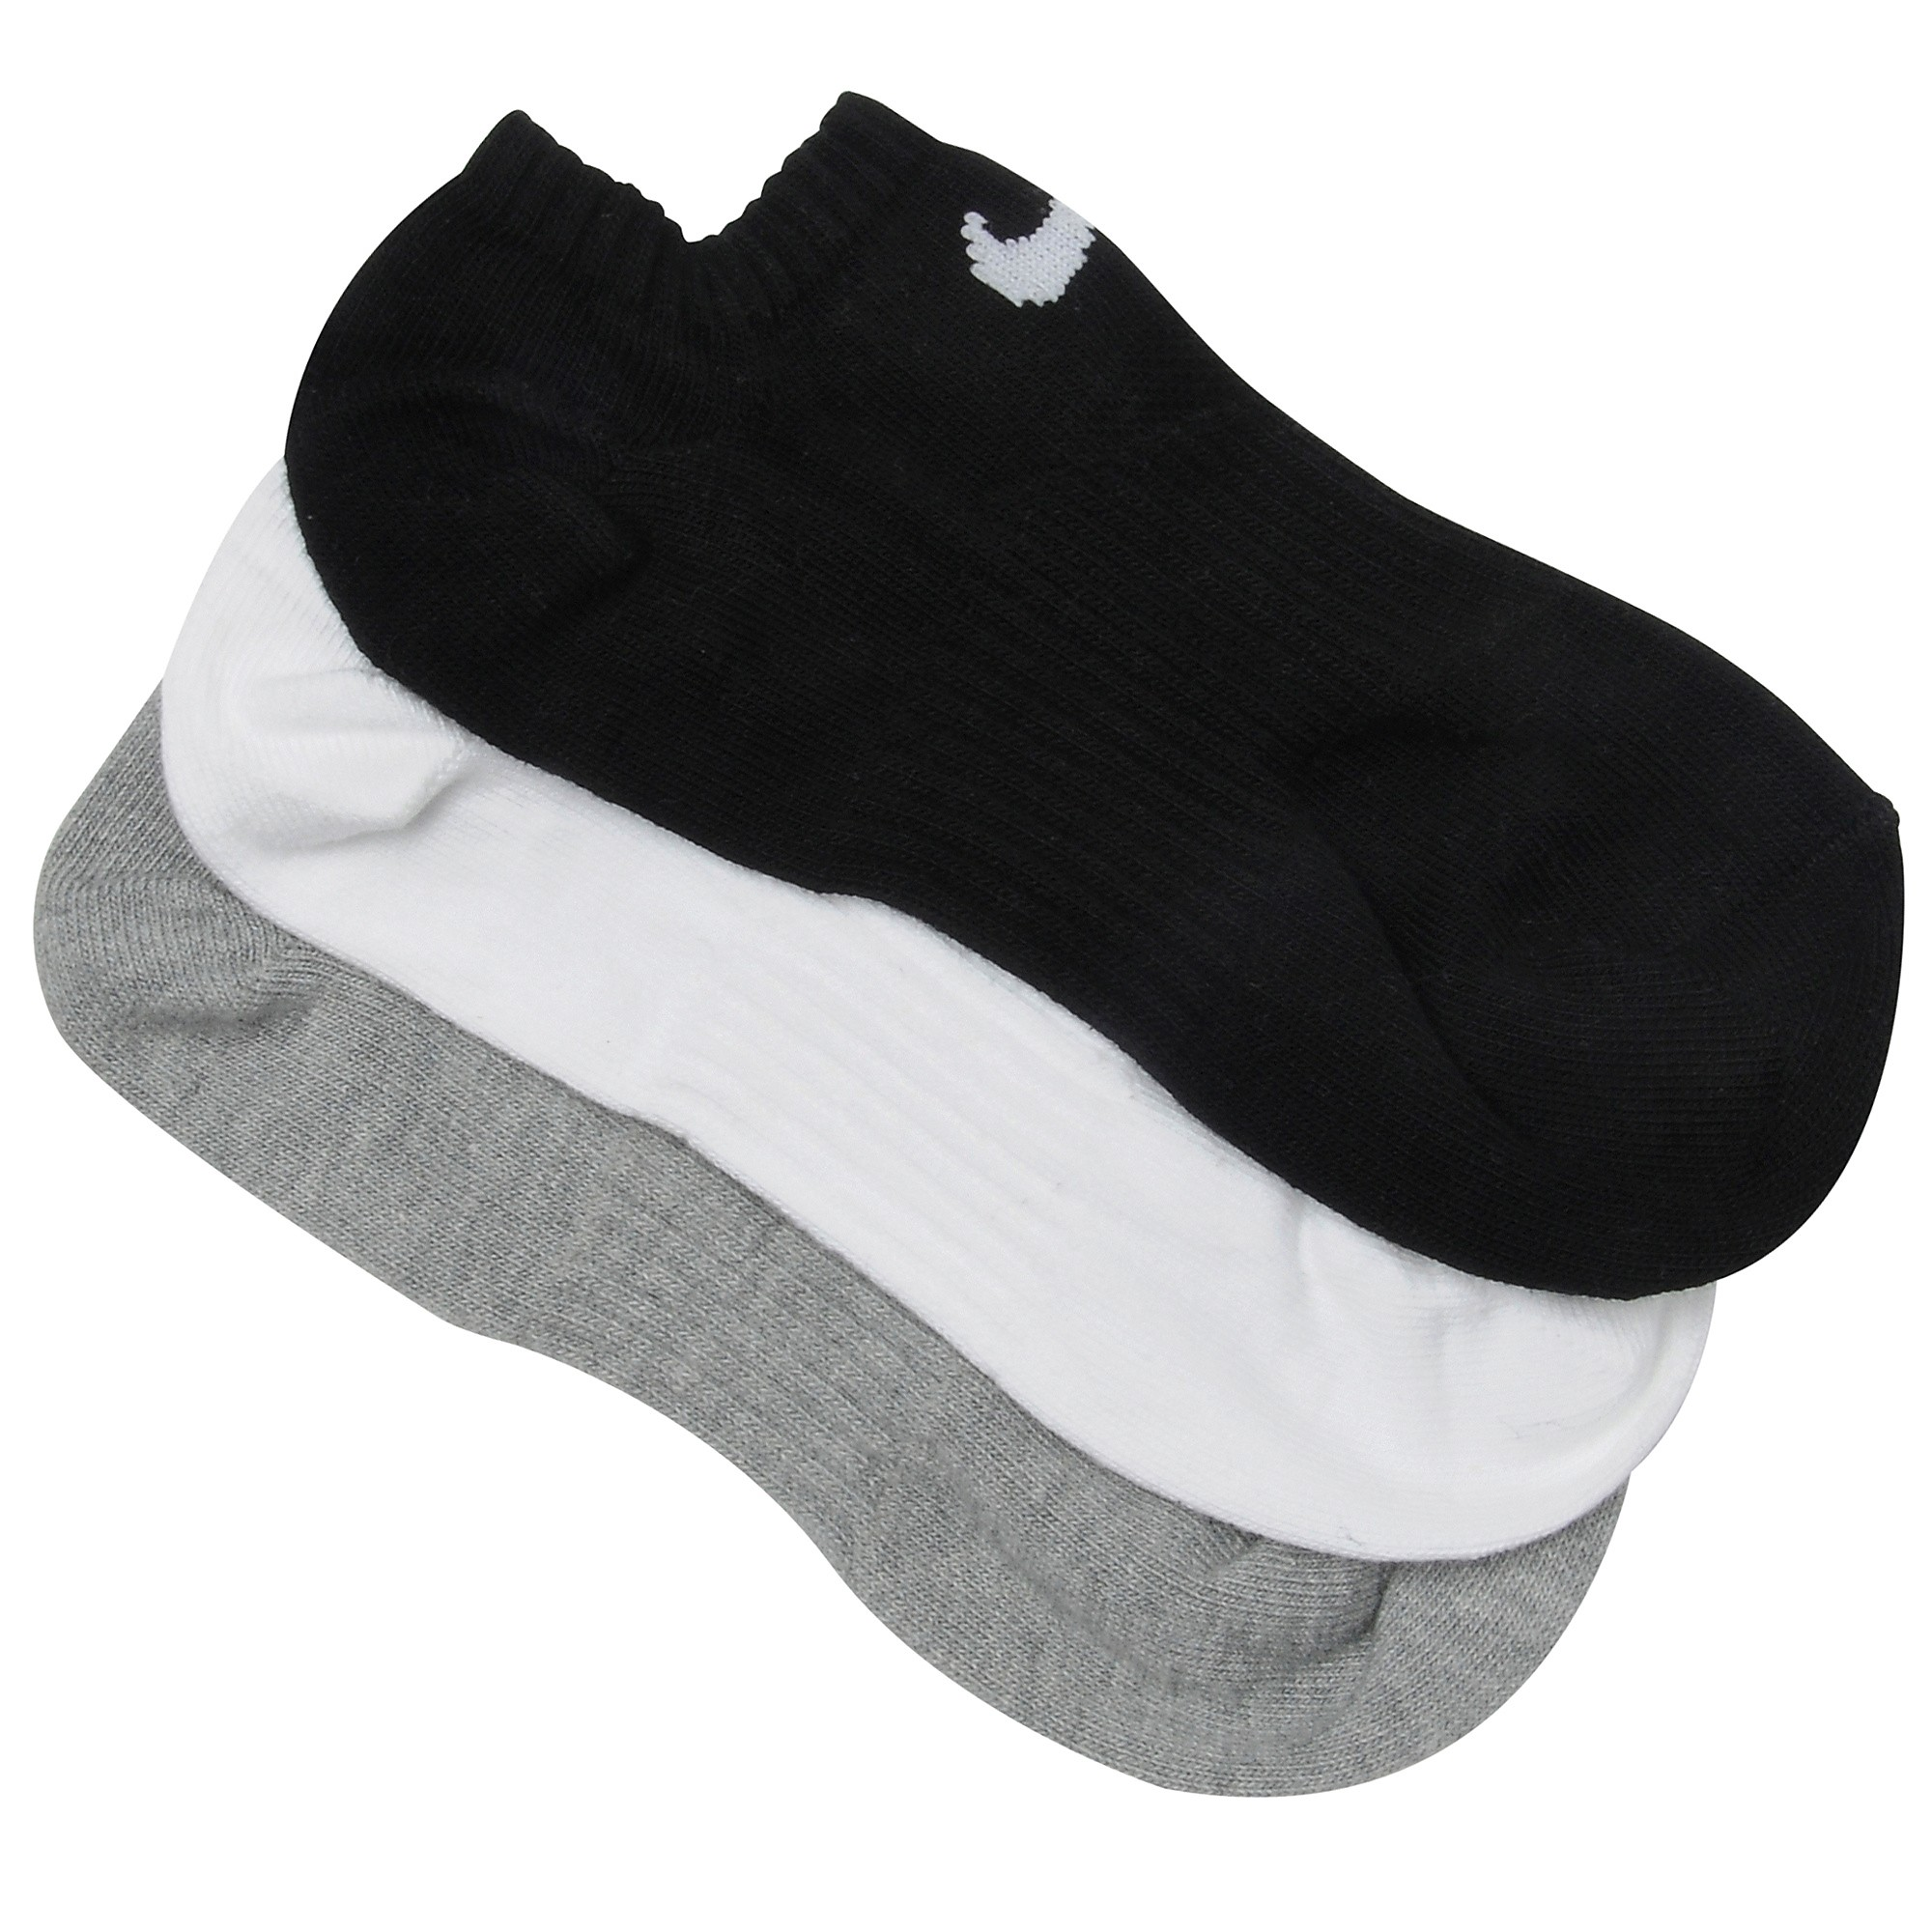 Nike 3-pack Low Ped-strumpor